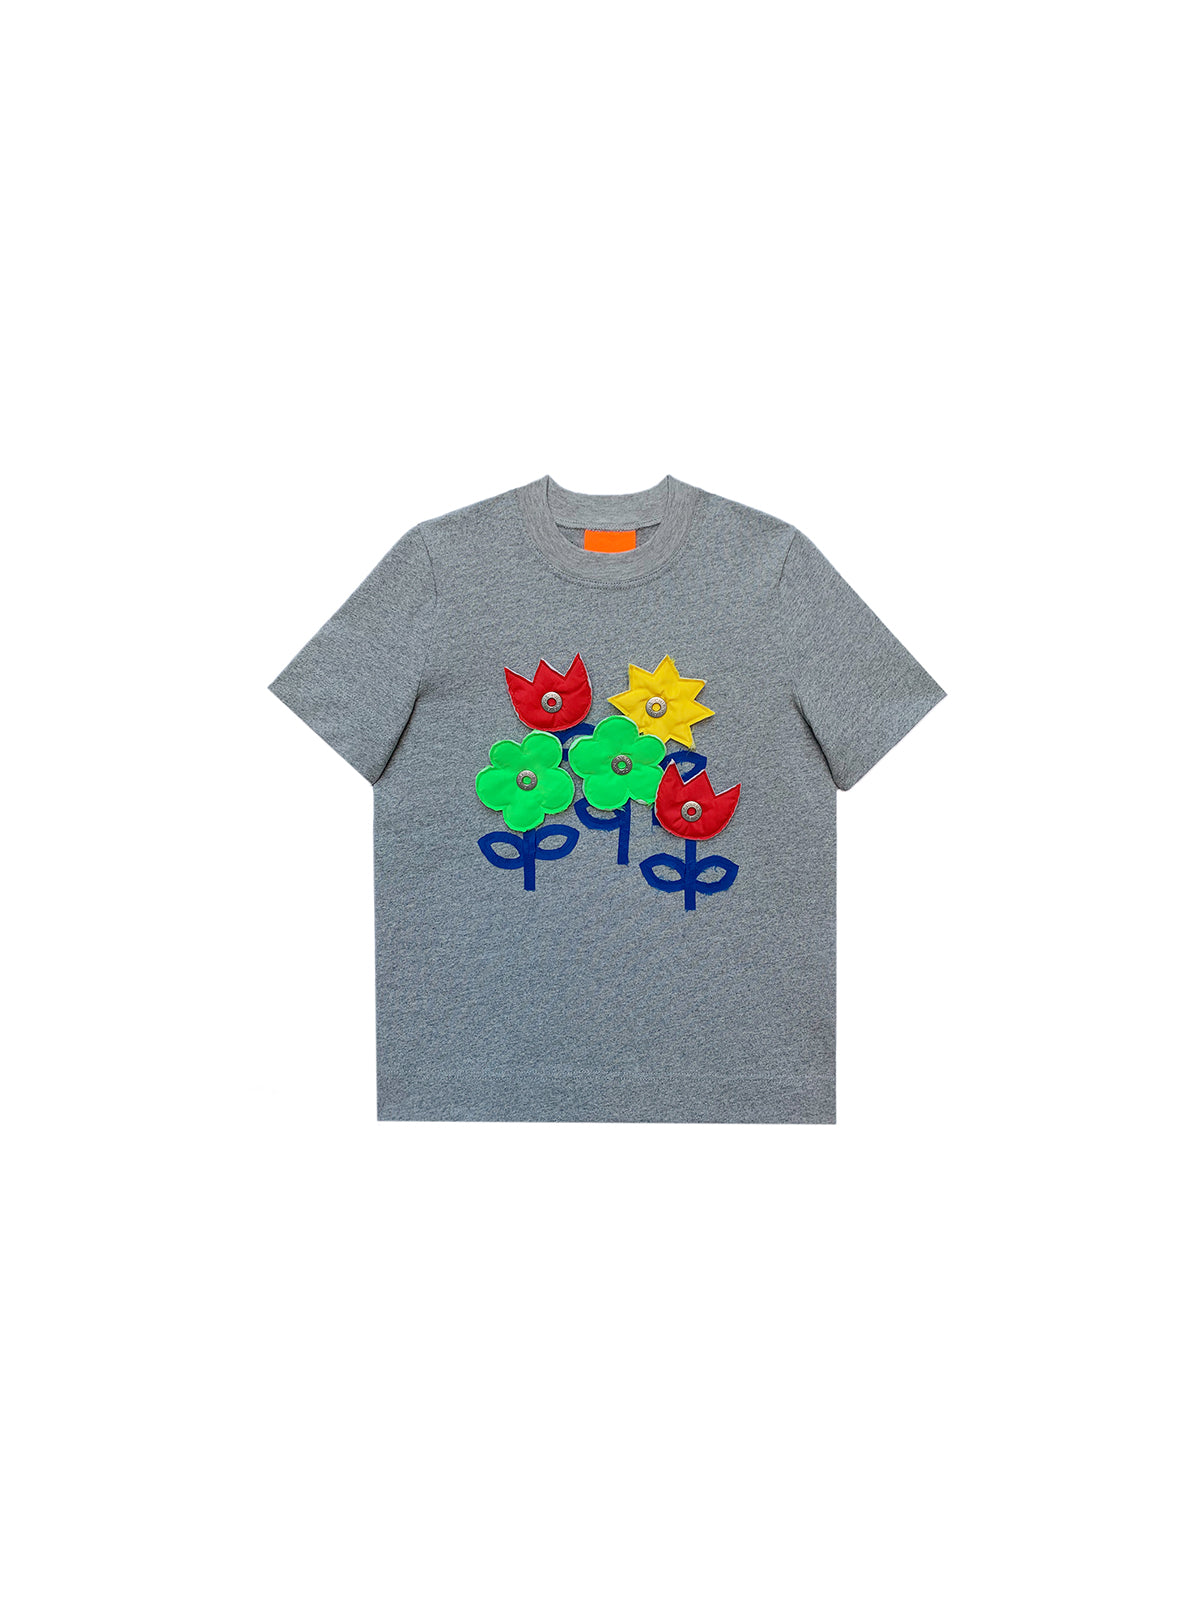 [ HAPPY MOTHER'S DAY ] ALL OF FLOWERS WERE BLOOMING T-SHIRT